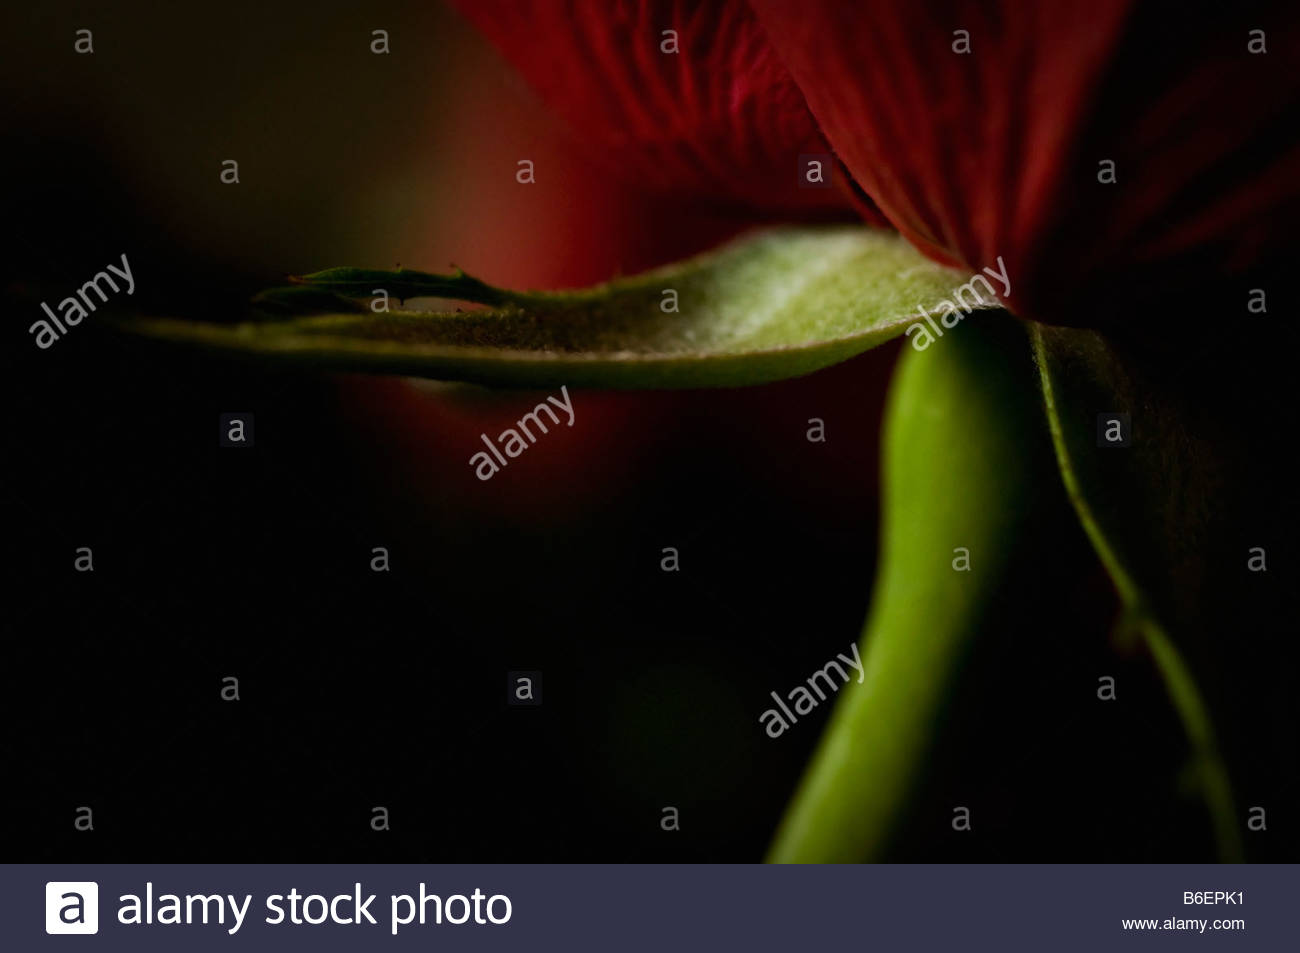 Close-up on flower - Stock Image